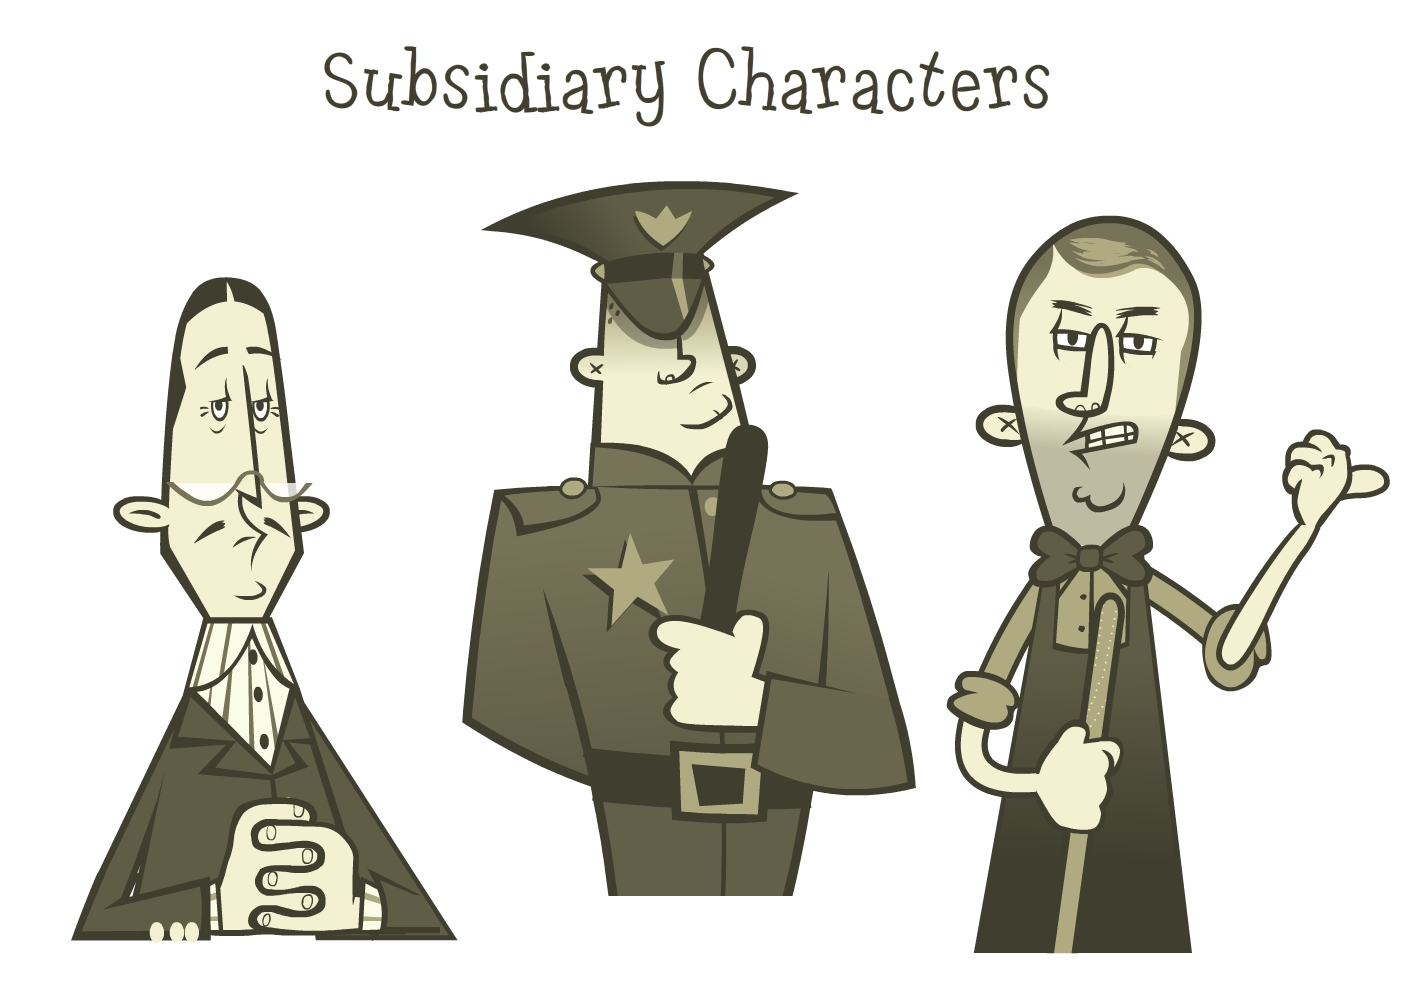 The Bank Teller, Policeman and The Dry Goods Man